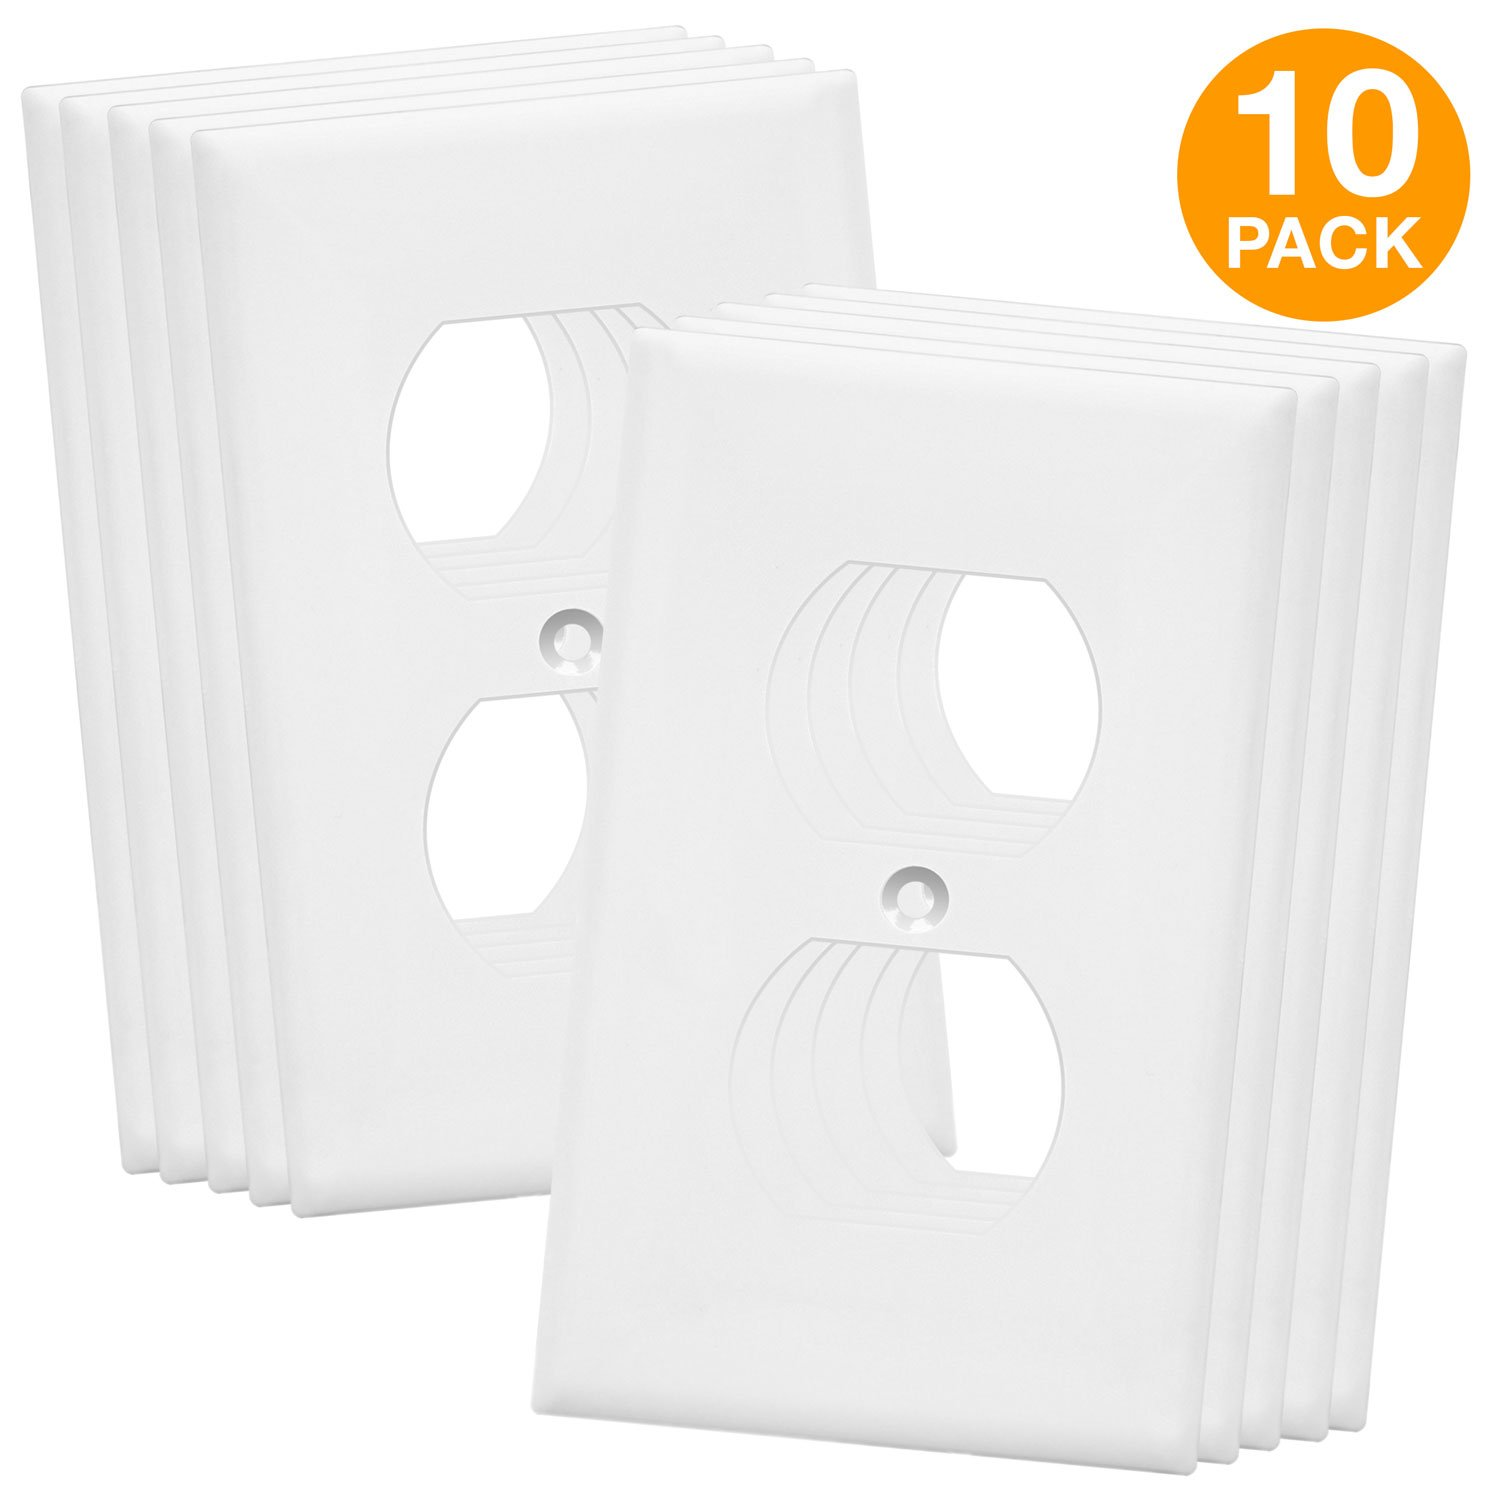 Duplex Wall Plates Kit by Enerlites 8821-W Home Electrical Outlet Cover, 1-Gang Standard Size, Unbreakable Polycarbonate Material, White - 10 Pack Dual Port Replacement Receptacle Faceplates Covers by ENERLITES